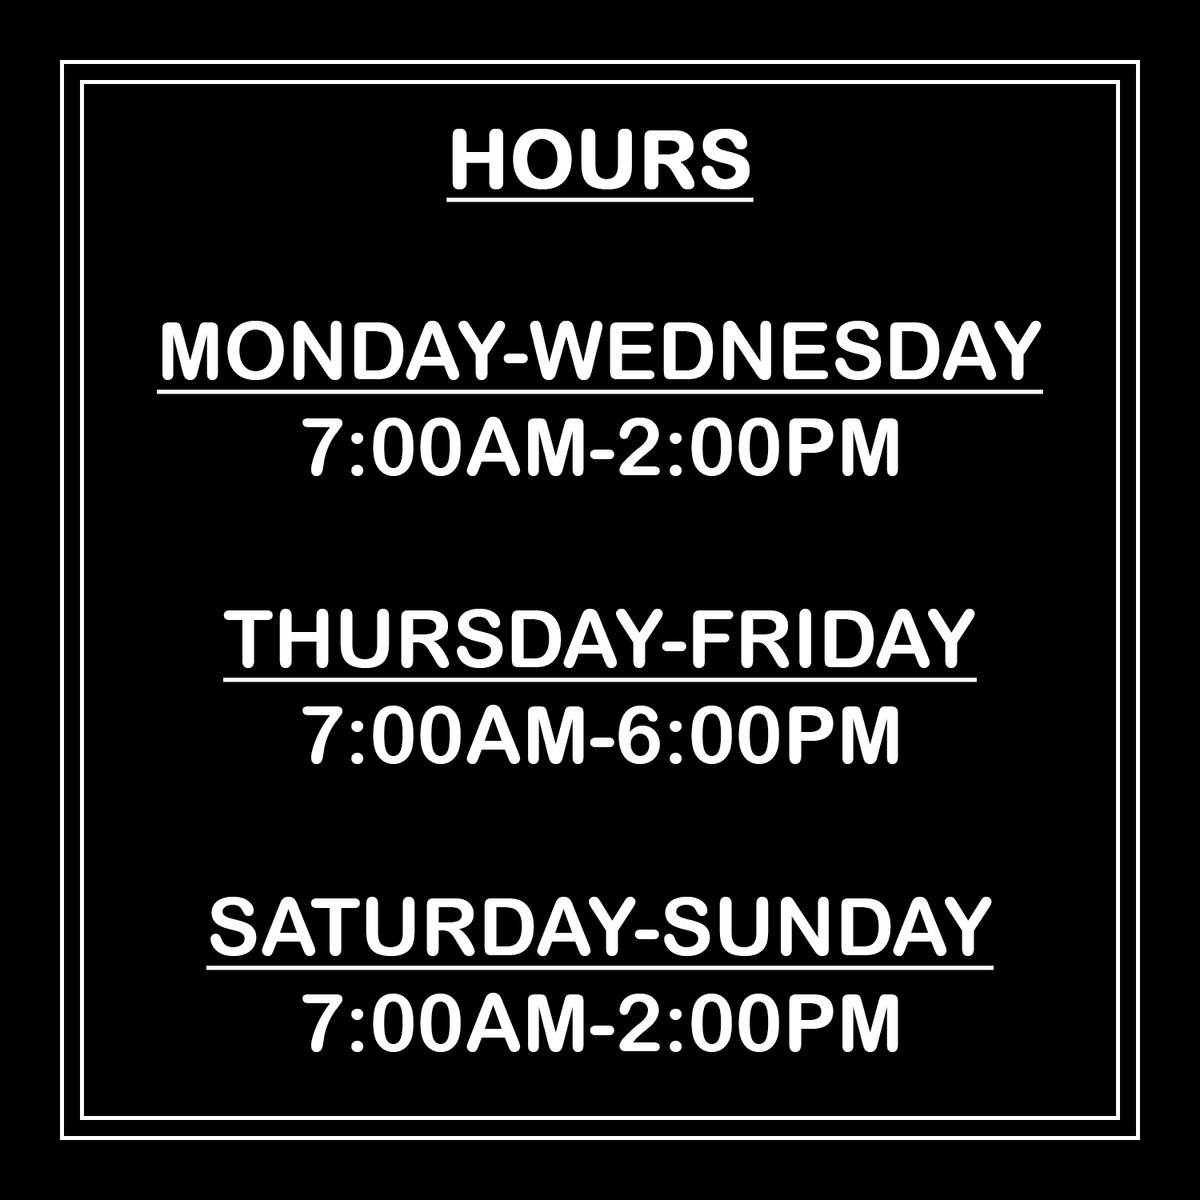 take-out hours